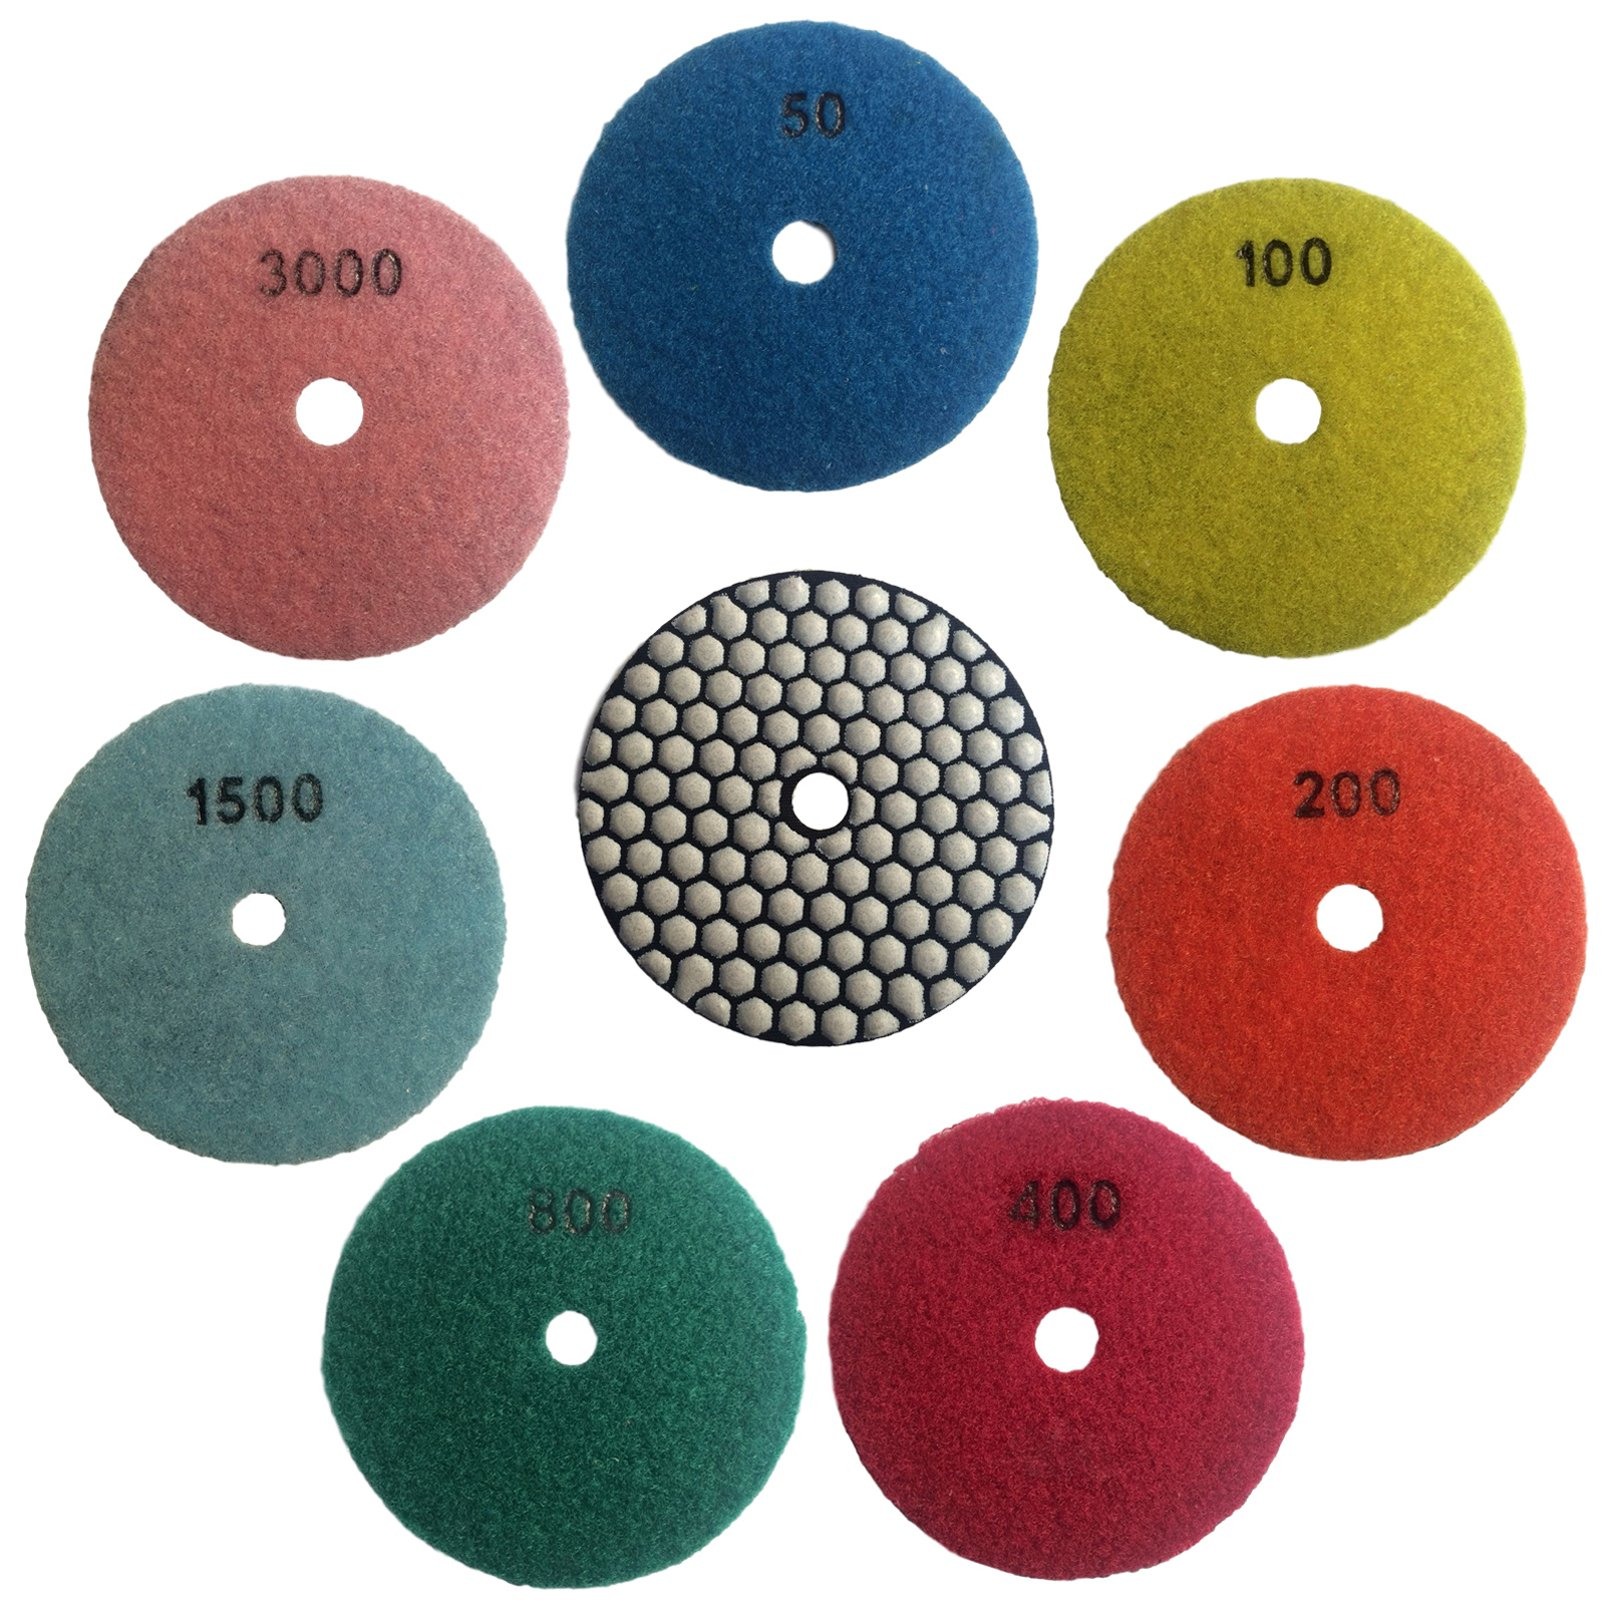 Konfor 3 Inch 7 Pcs Dry Diamond Polishing Pads for Grinding Granite Marble Stone by Konfor (Image #1)